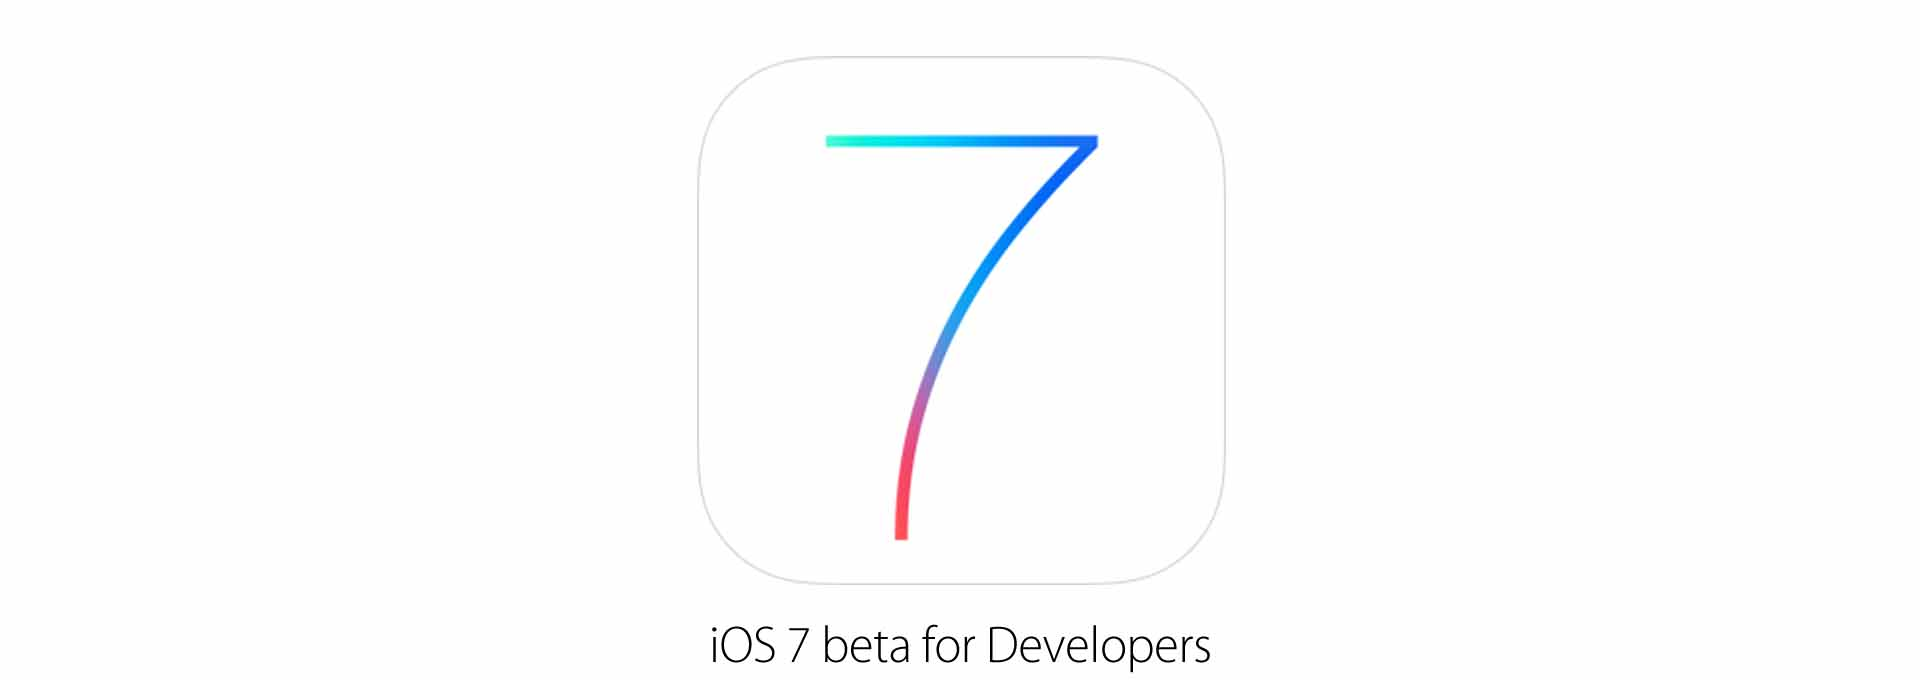 iOS 7 Beta: guide d'installation détaillé